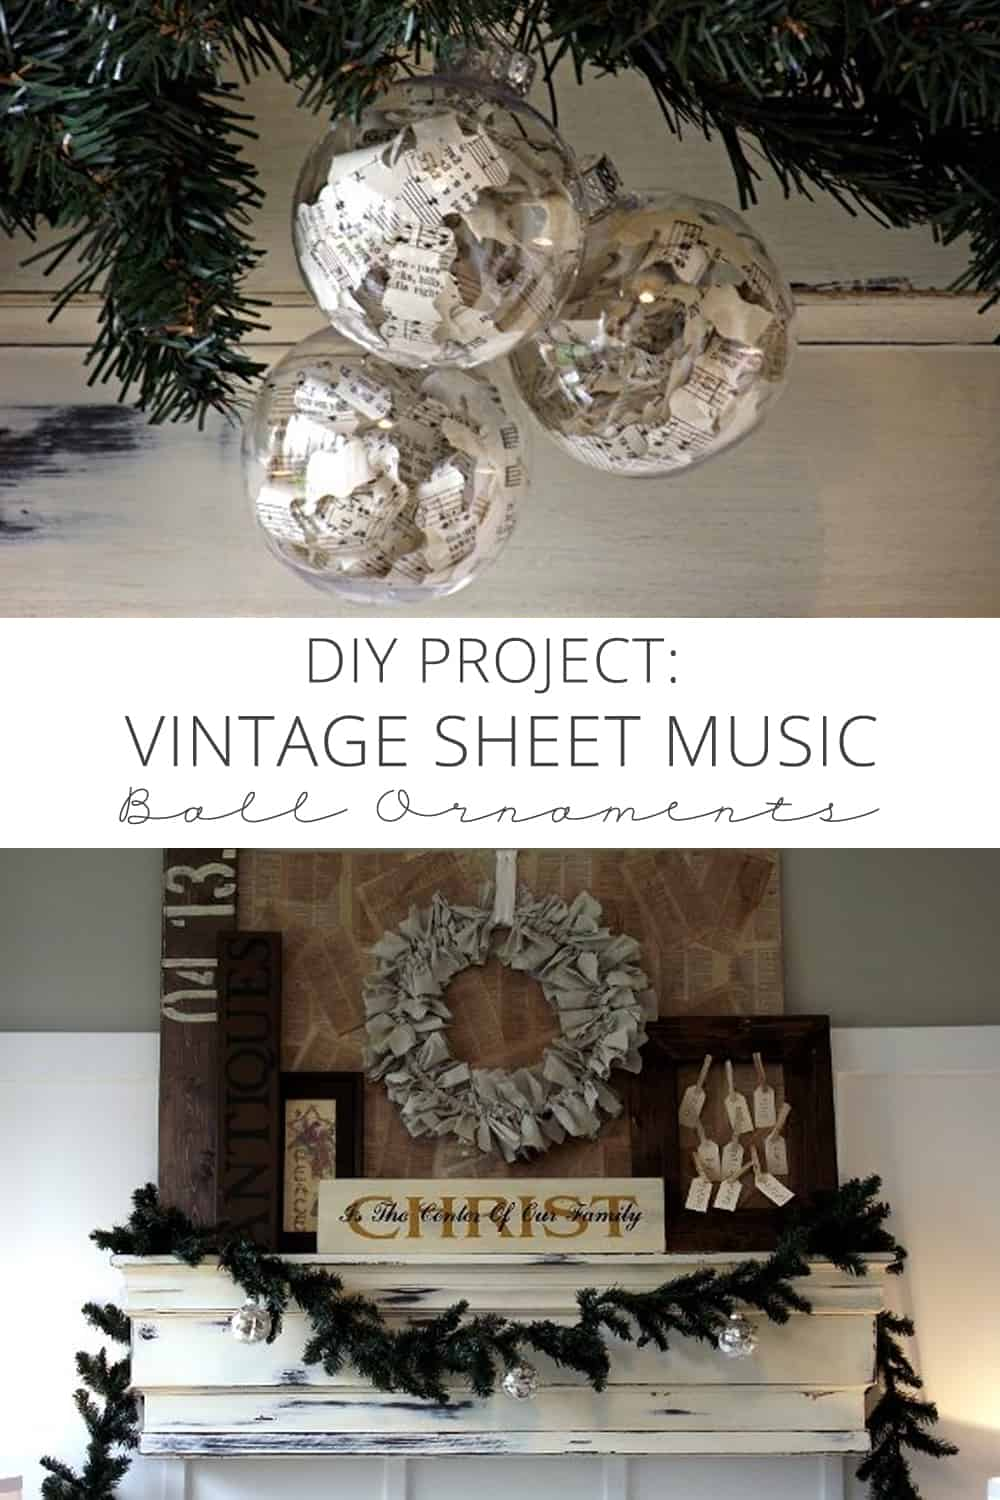 Diy project vintage sheet music ball ornaments for Diy music projects